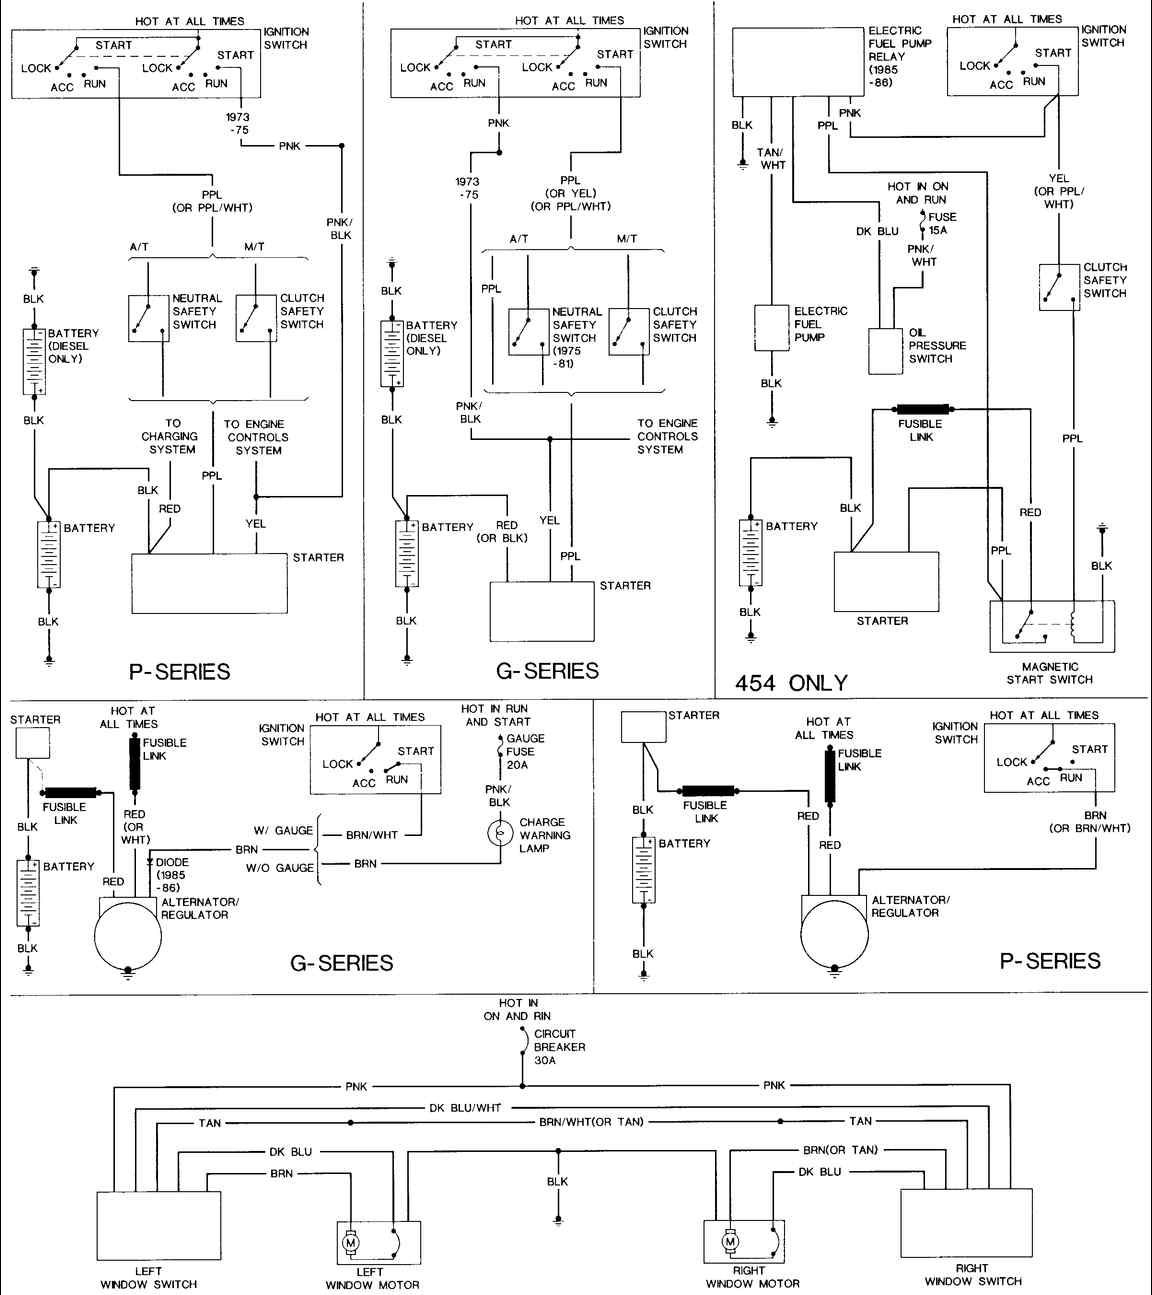 0c73623a181dc376dbb4777e2029d285 85 chevy truck wiring diagram 85 chevy van the steering column Basic Electrical Wiring Diagrams at fashall.co